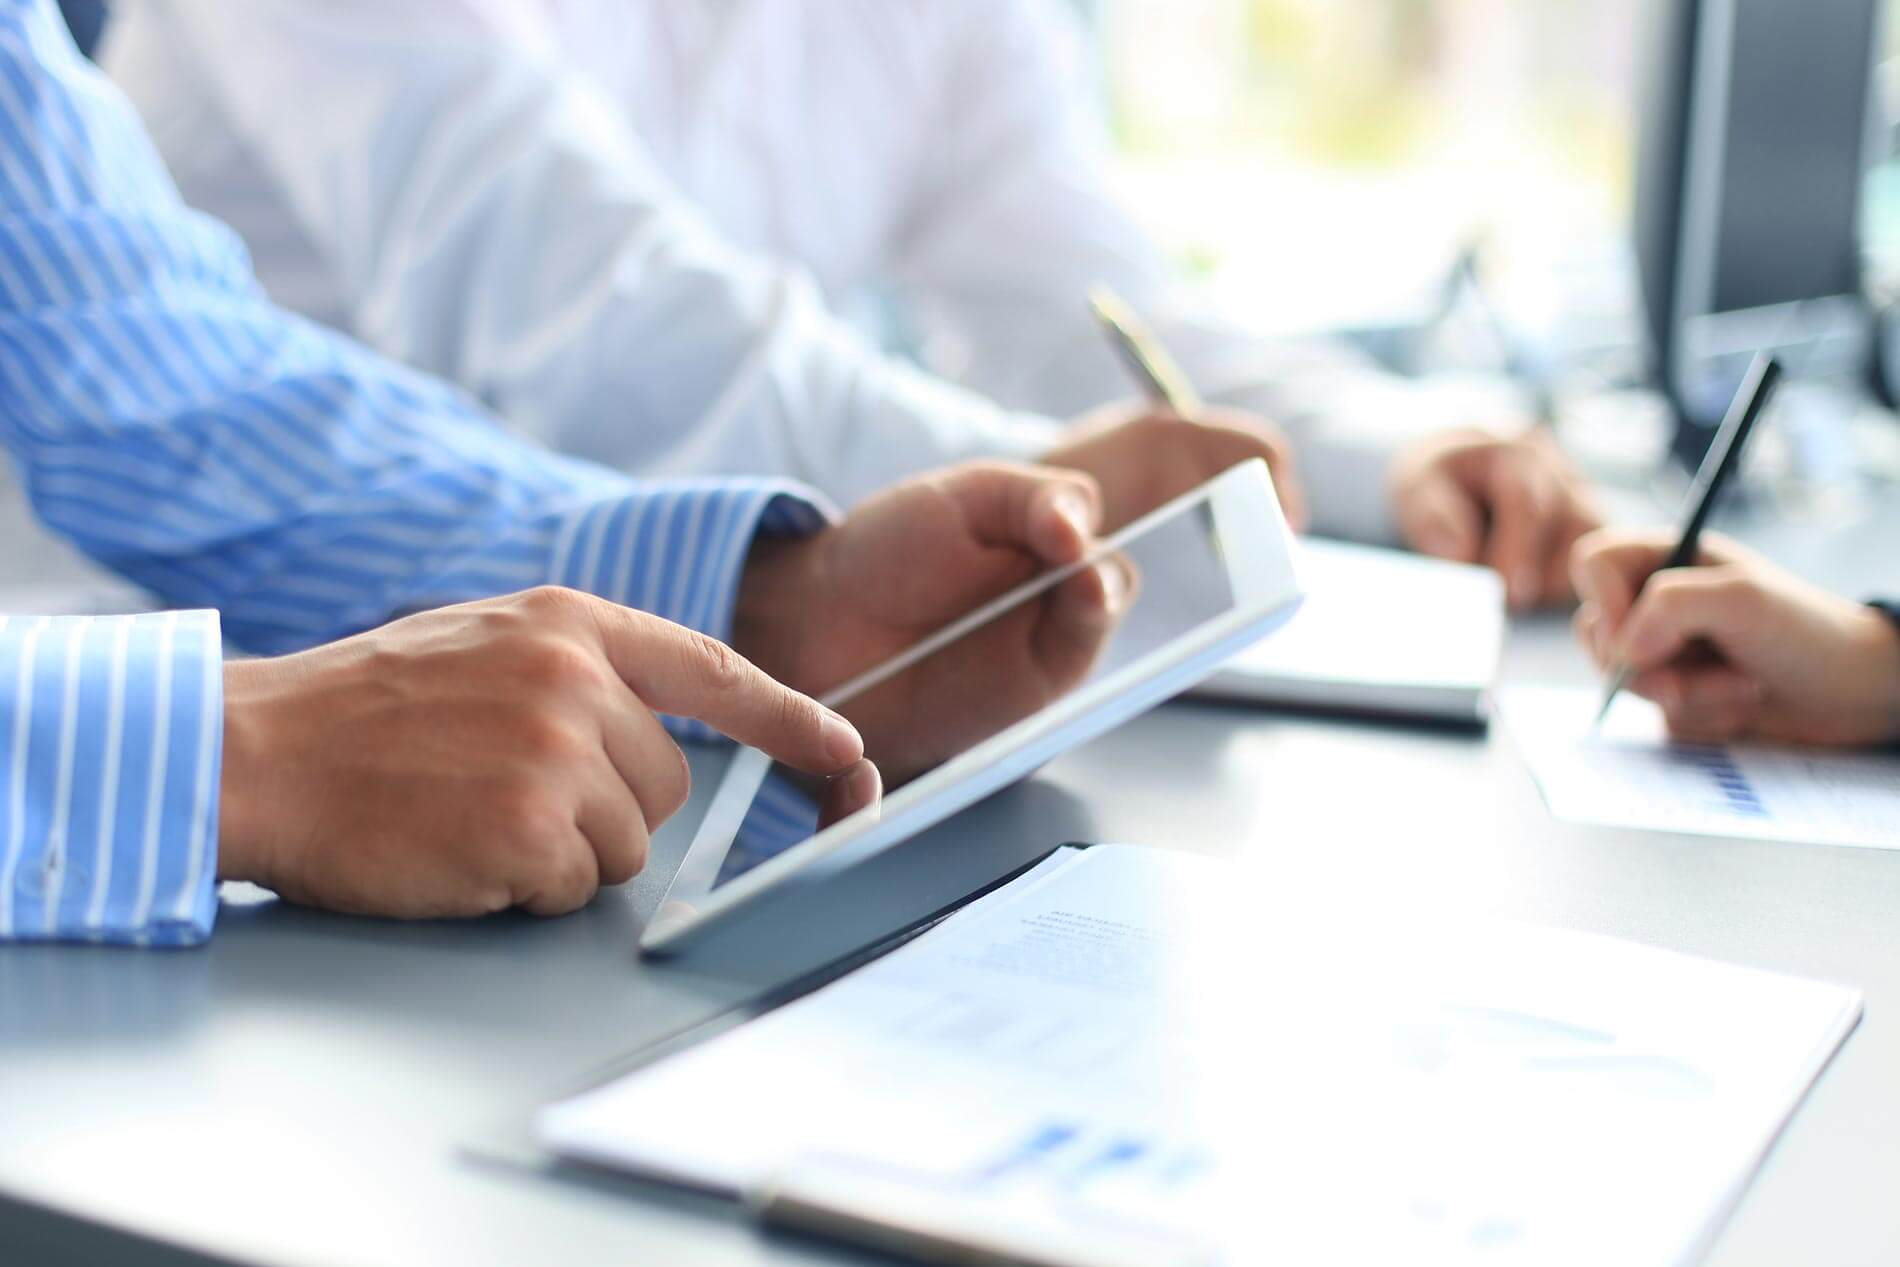 workflow automation accounts payable banner - people working on tablet and documents at table